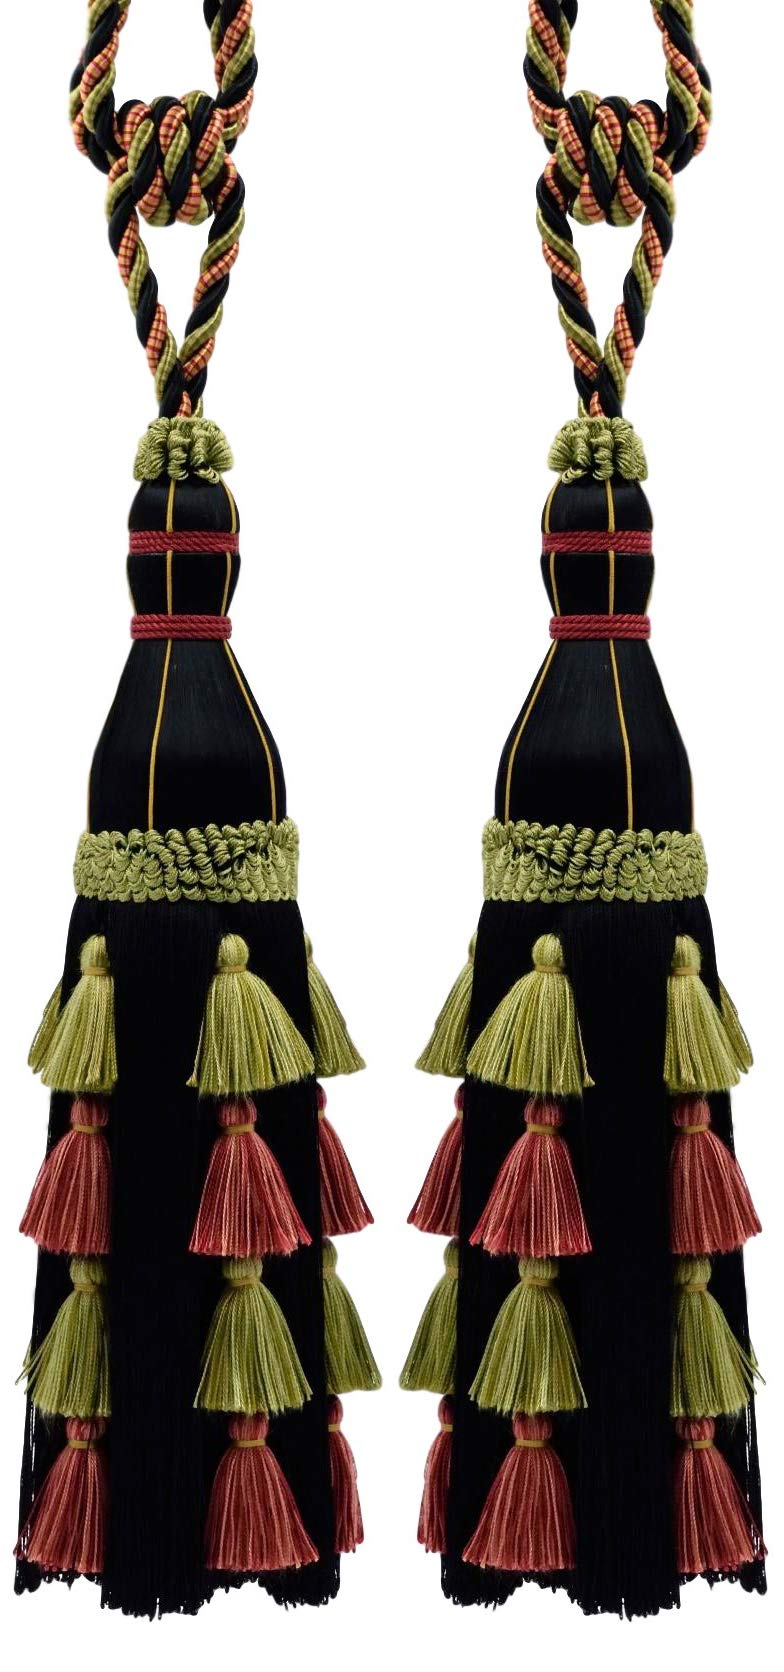 Pair of Large Elegant Sage Green, Black, Red Curtain & Drapery Tassel Tieback / 13 Inch Tassel, 35 Inch Spread (Embrace), Style# TBAR13 Color: Black Cherry - AR06 by DecoPro